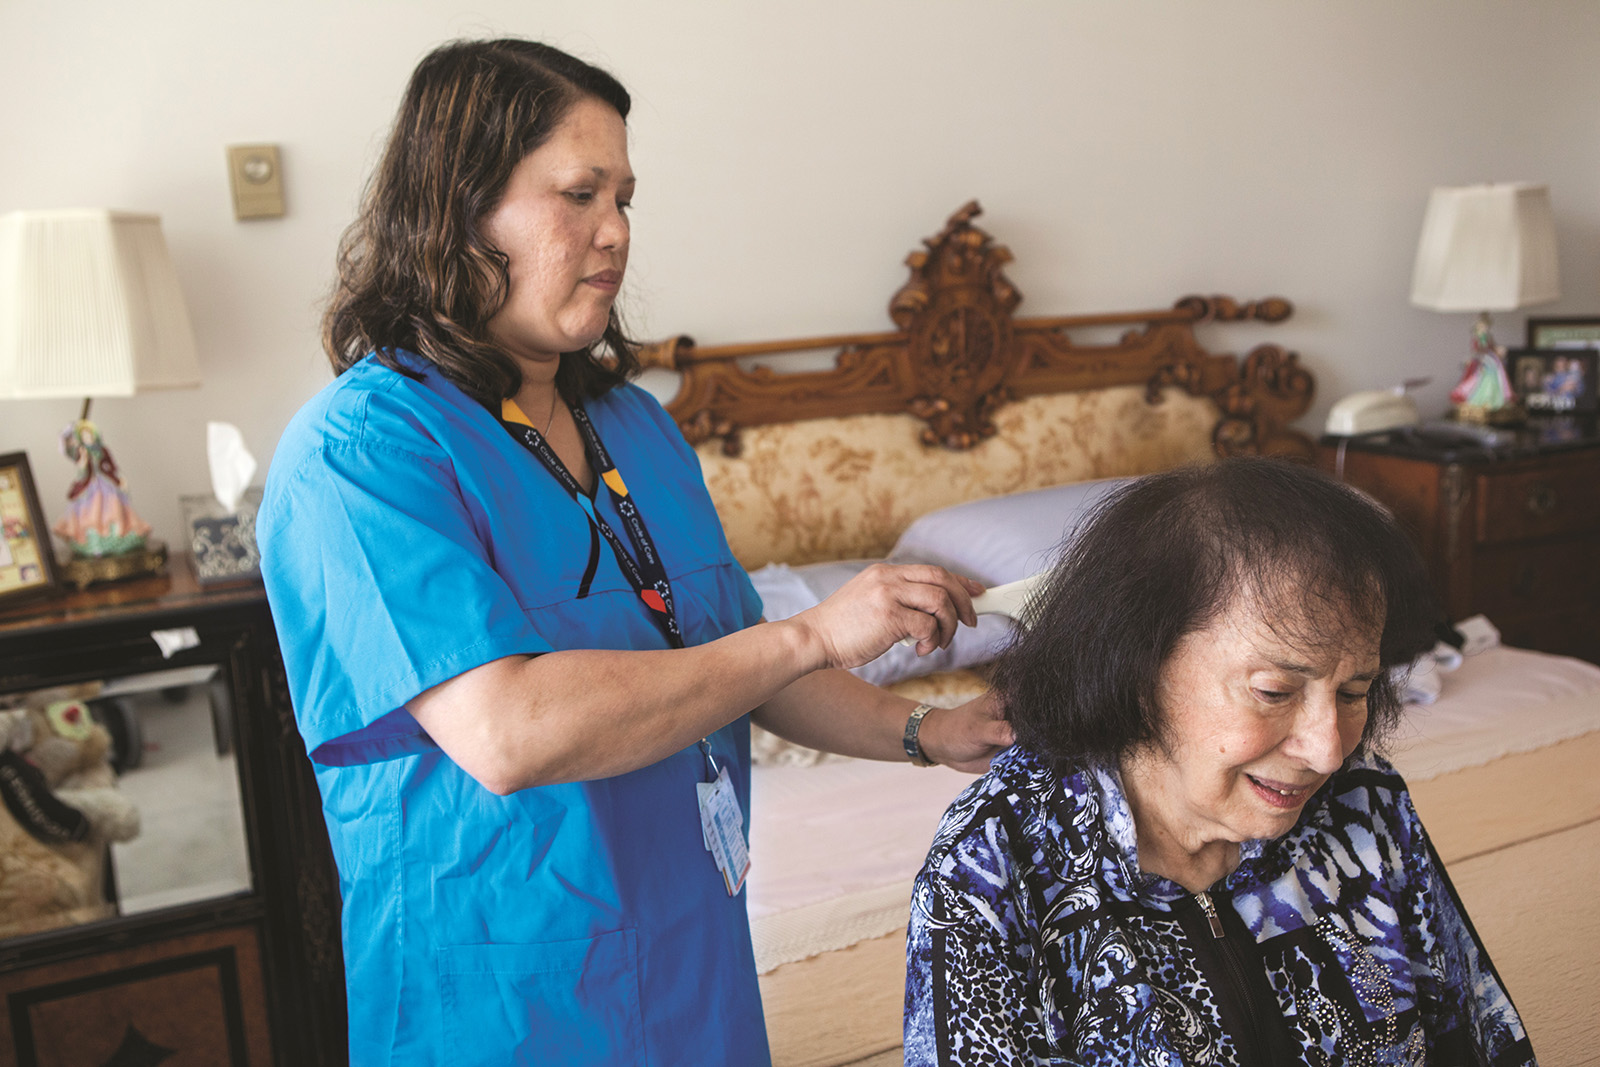 photo of PSW brushing client's hair